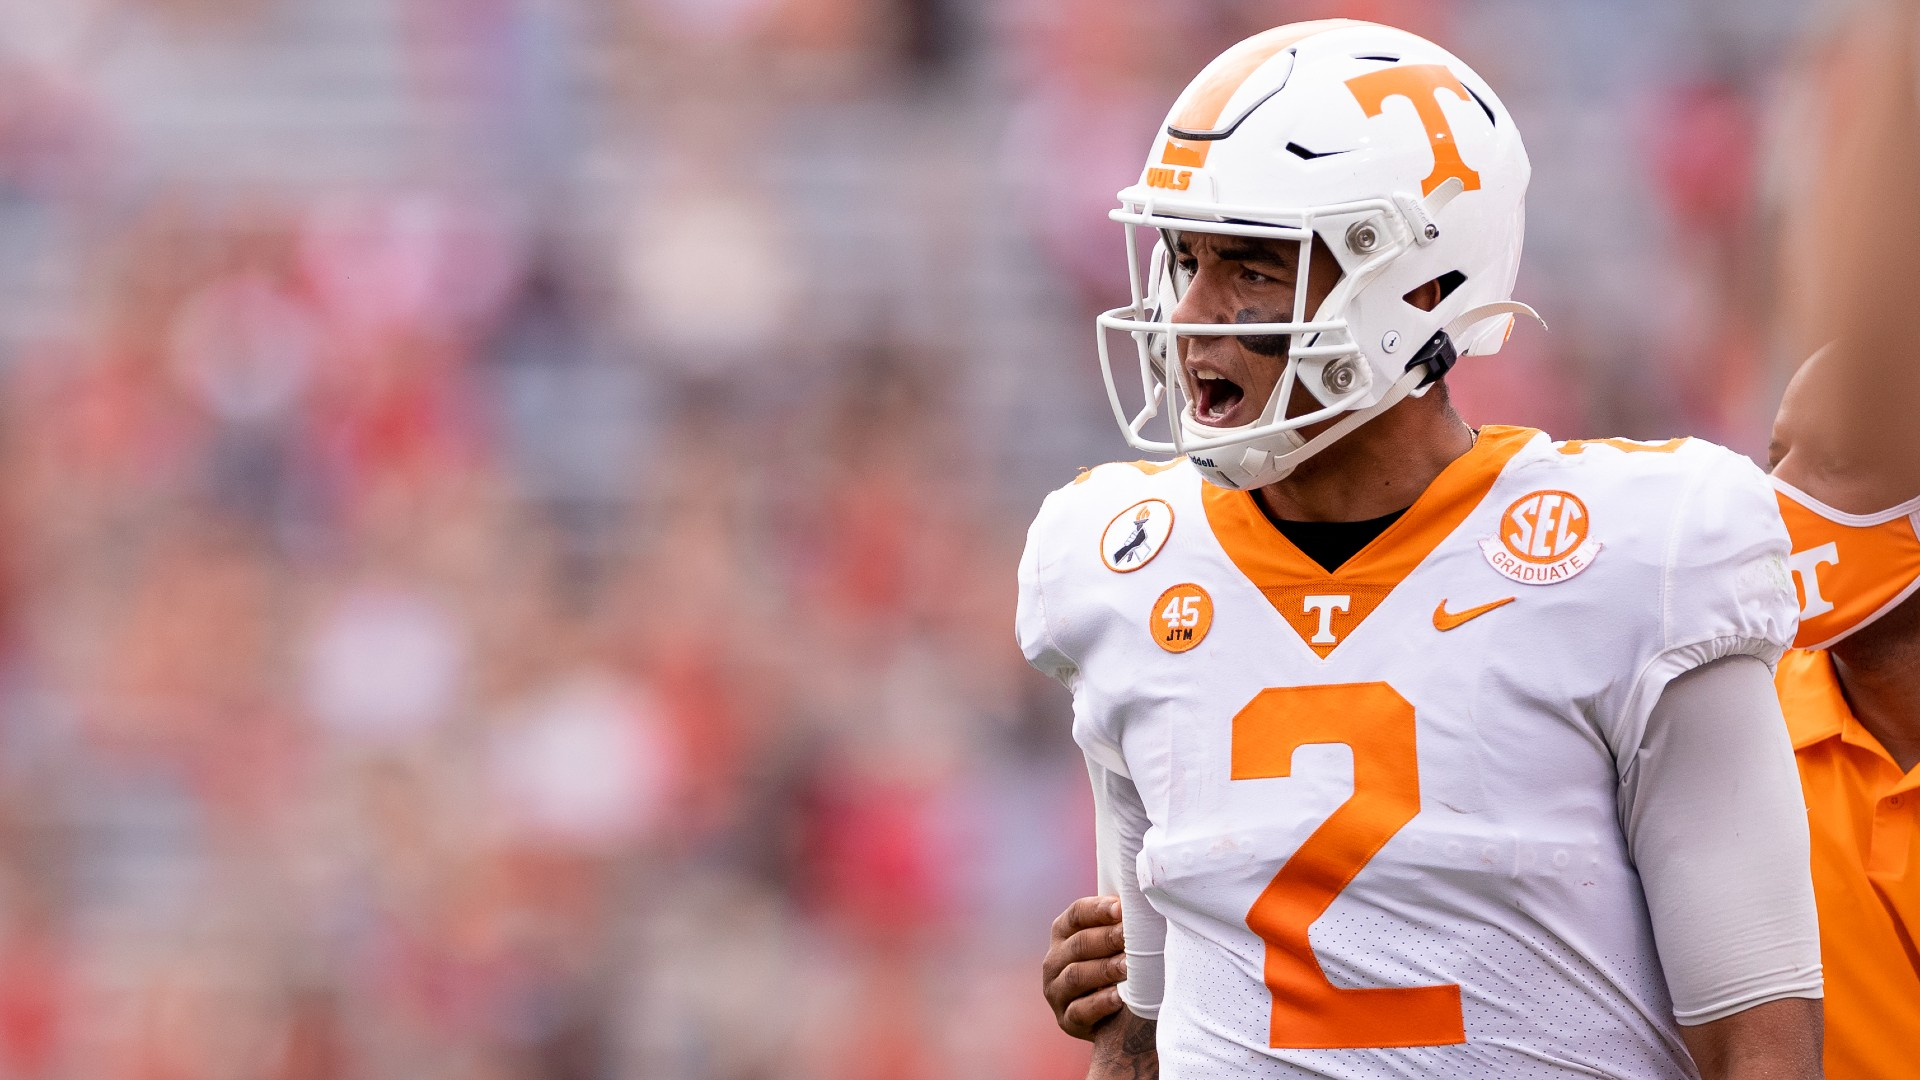 College Football Odds & Picks for Tennessee vs. Auburn: Saturday's Betting Value on Tigers article feature image